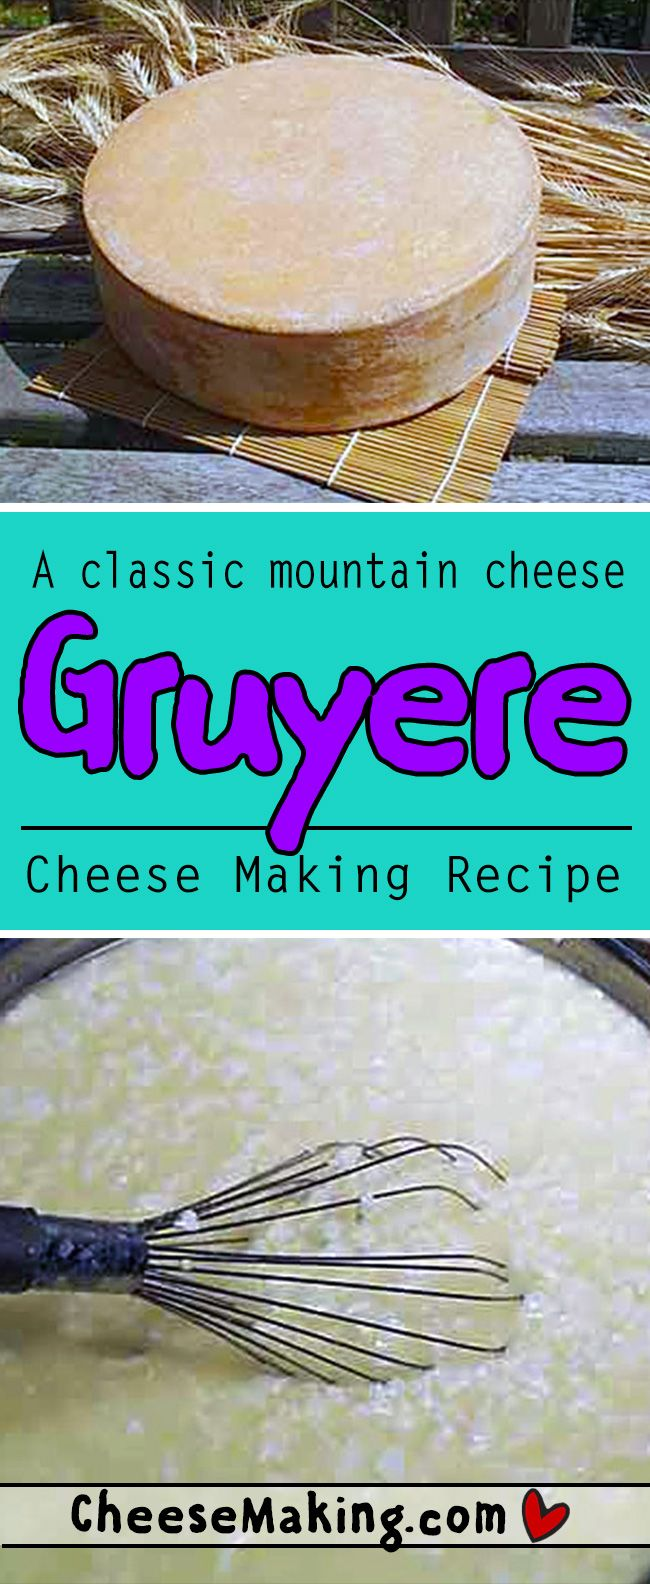 Learn how to make this classic 'mountain cheese' of France and Switzerland. With smaller or nonexistent holes it's easily differentiated from the larger Ementhaller cheese | Cheesemaking.com